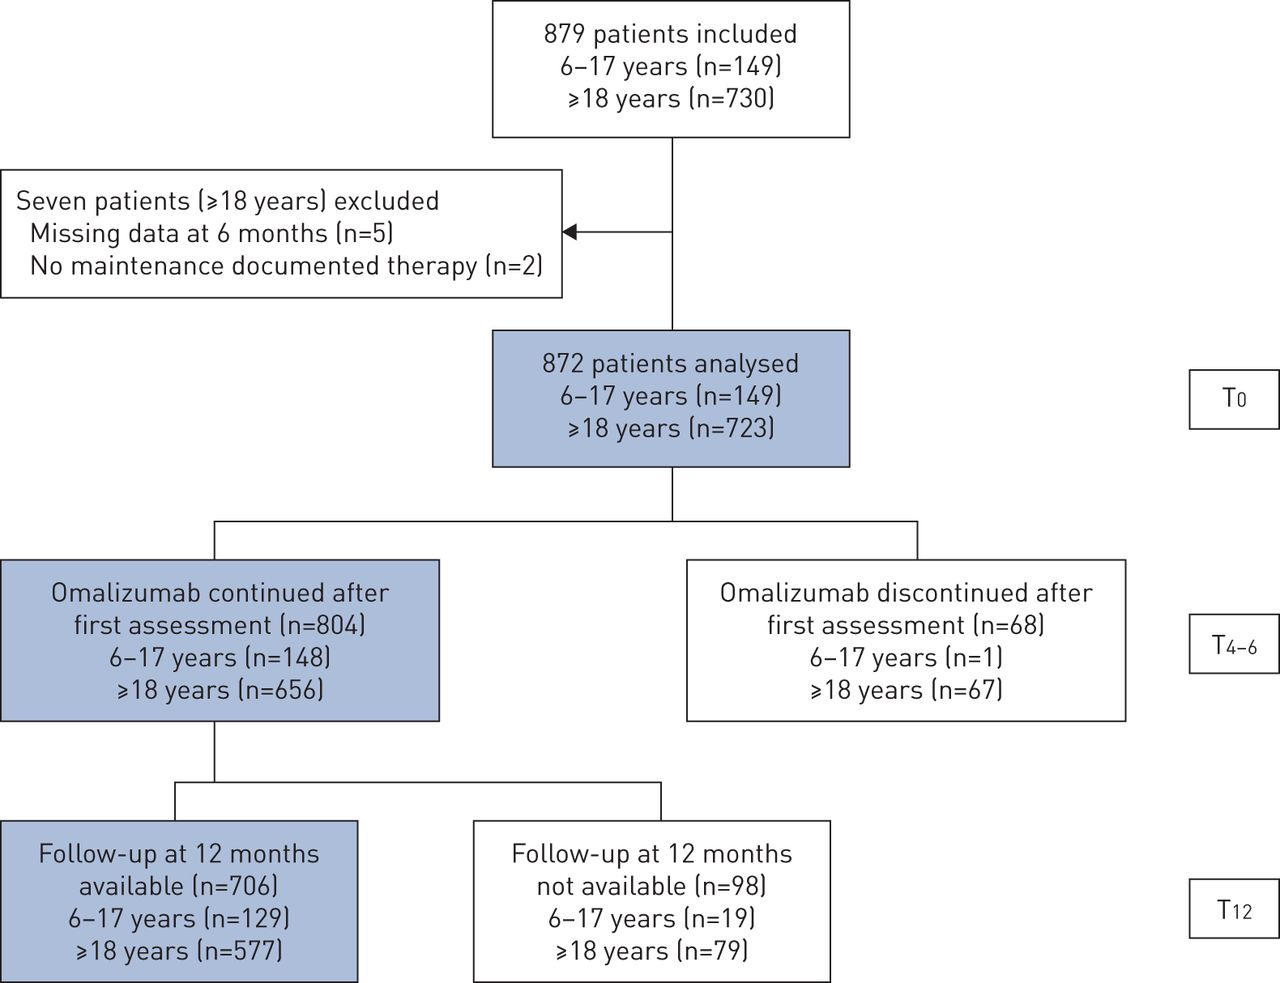 Omalizumab effectiveness in patients with severe allergic